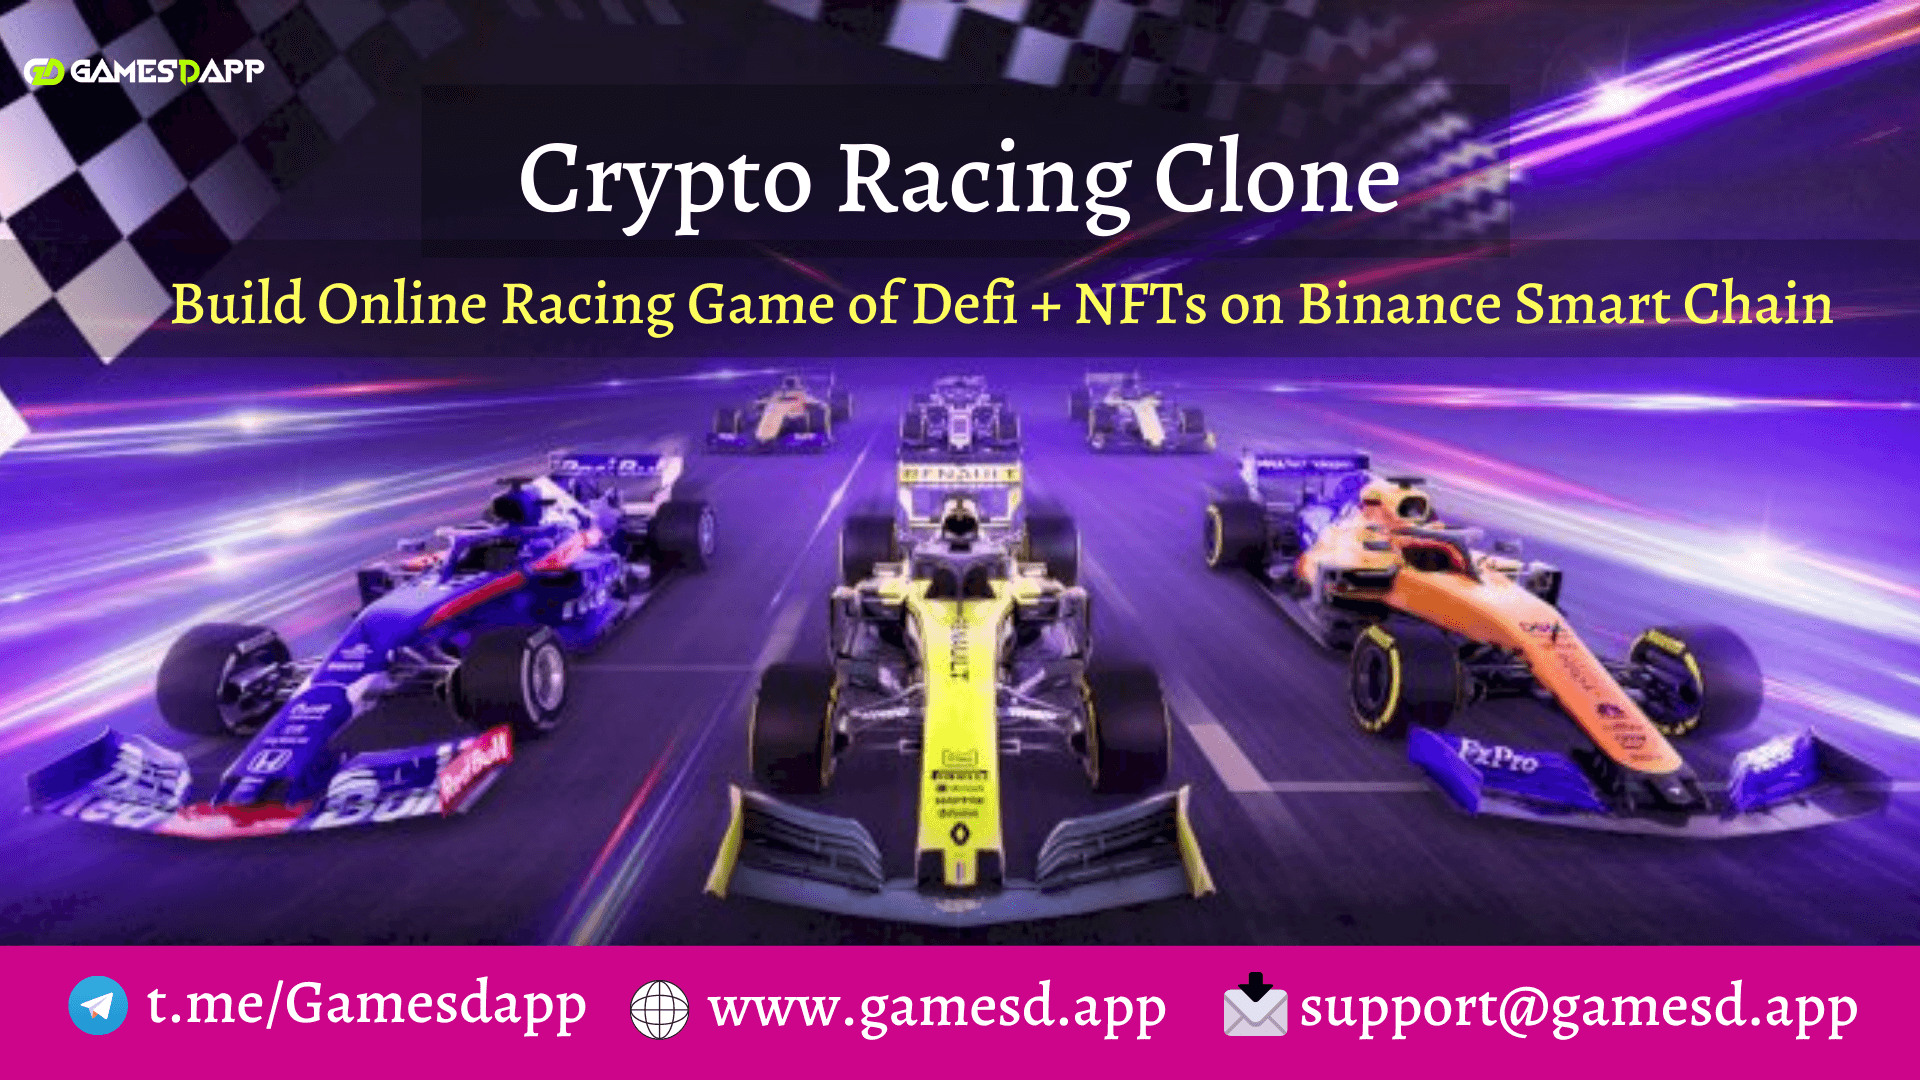 Crypto Racing Clone - To Launch Multiplayer Racing Game of DeFi + NFTs based on BSC